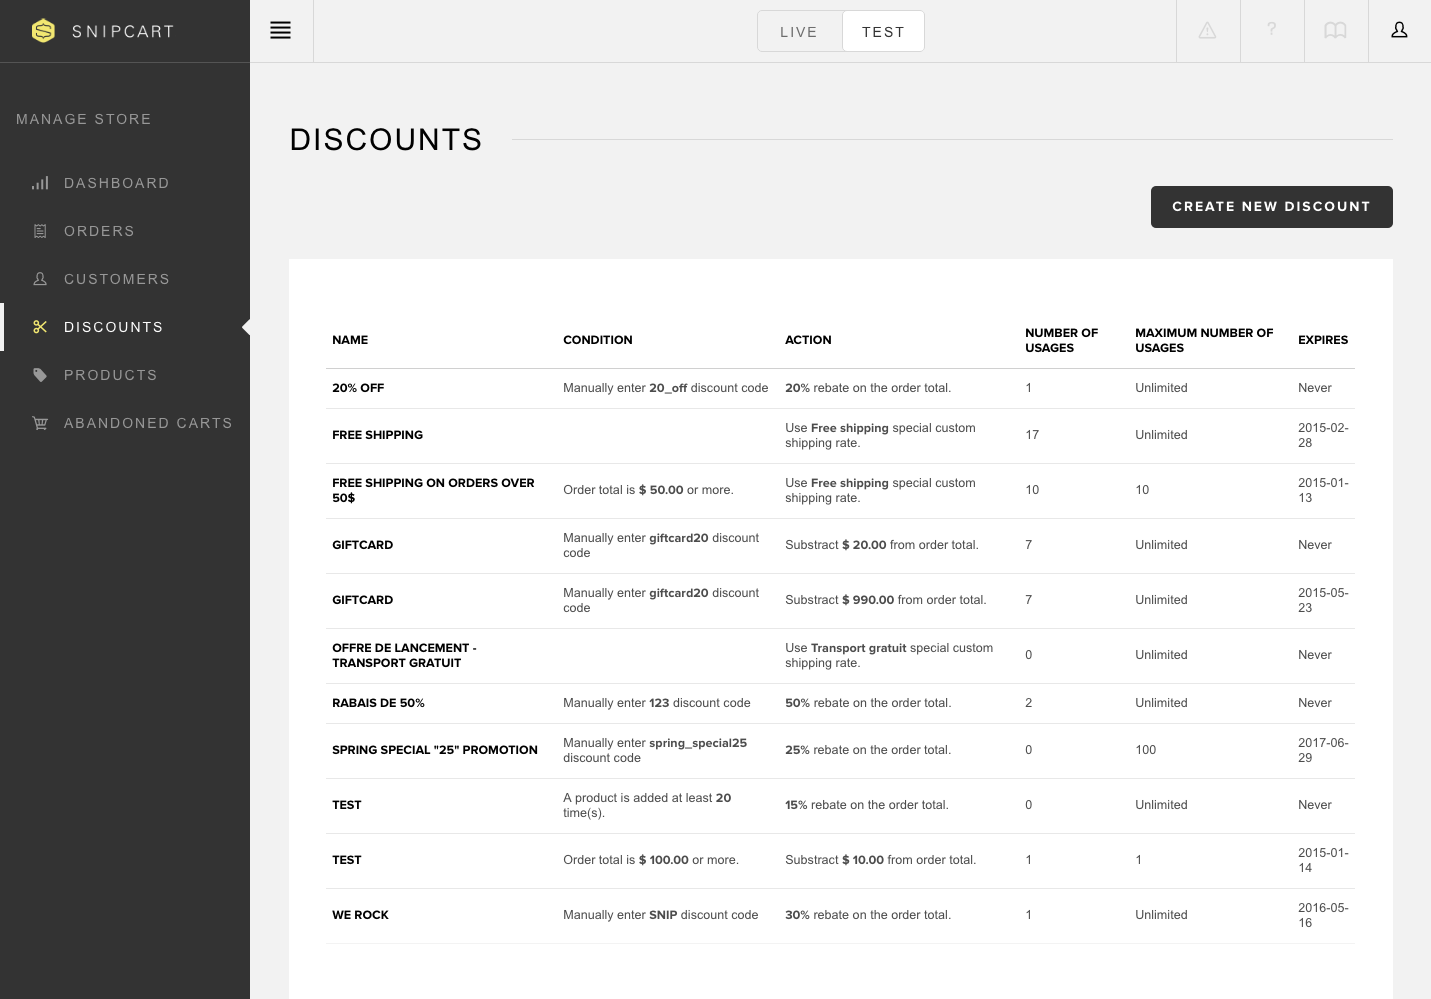 snipcart-docs-dashboard-discounts